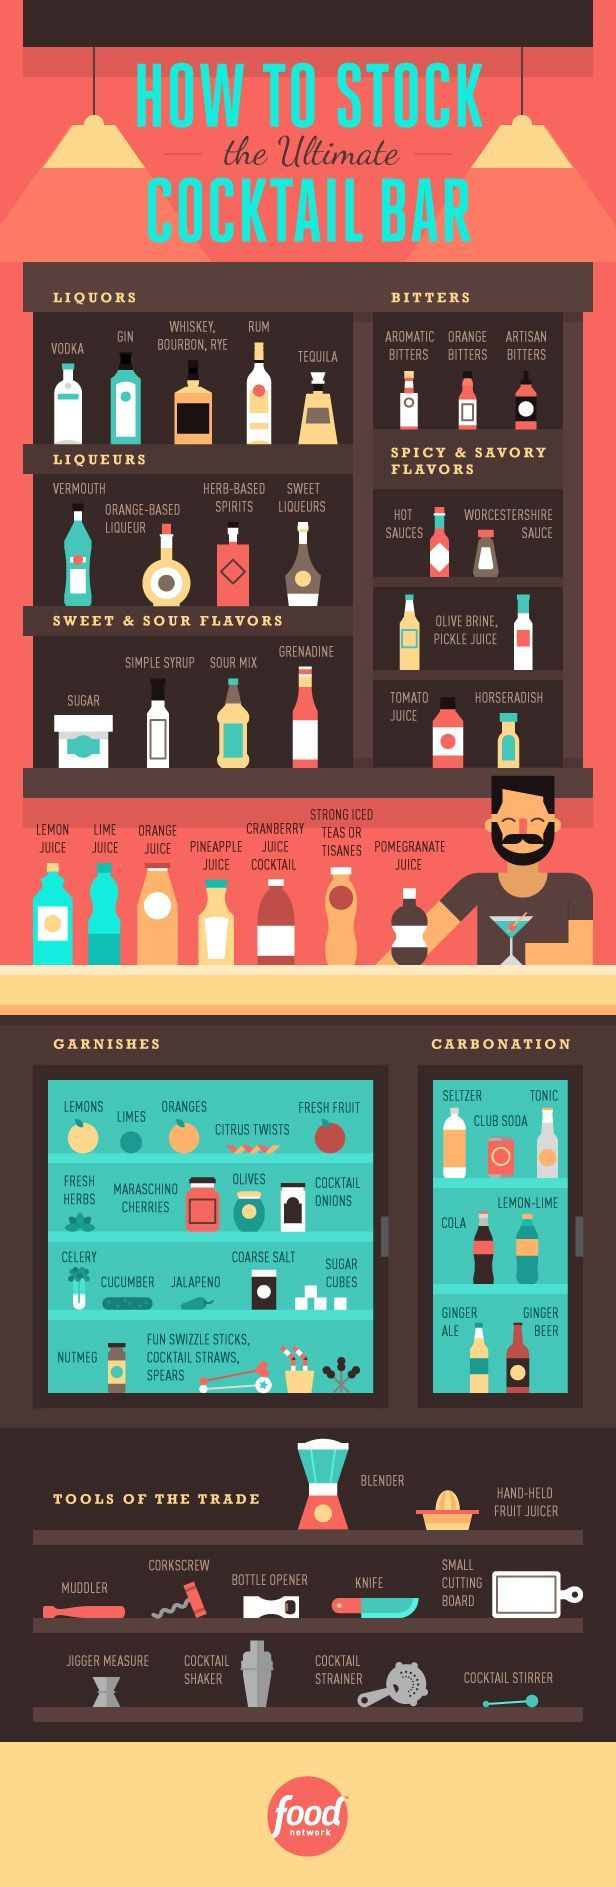 How to Stock a Cocktail Bar